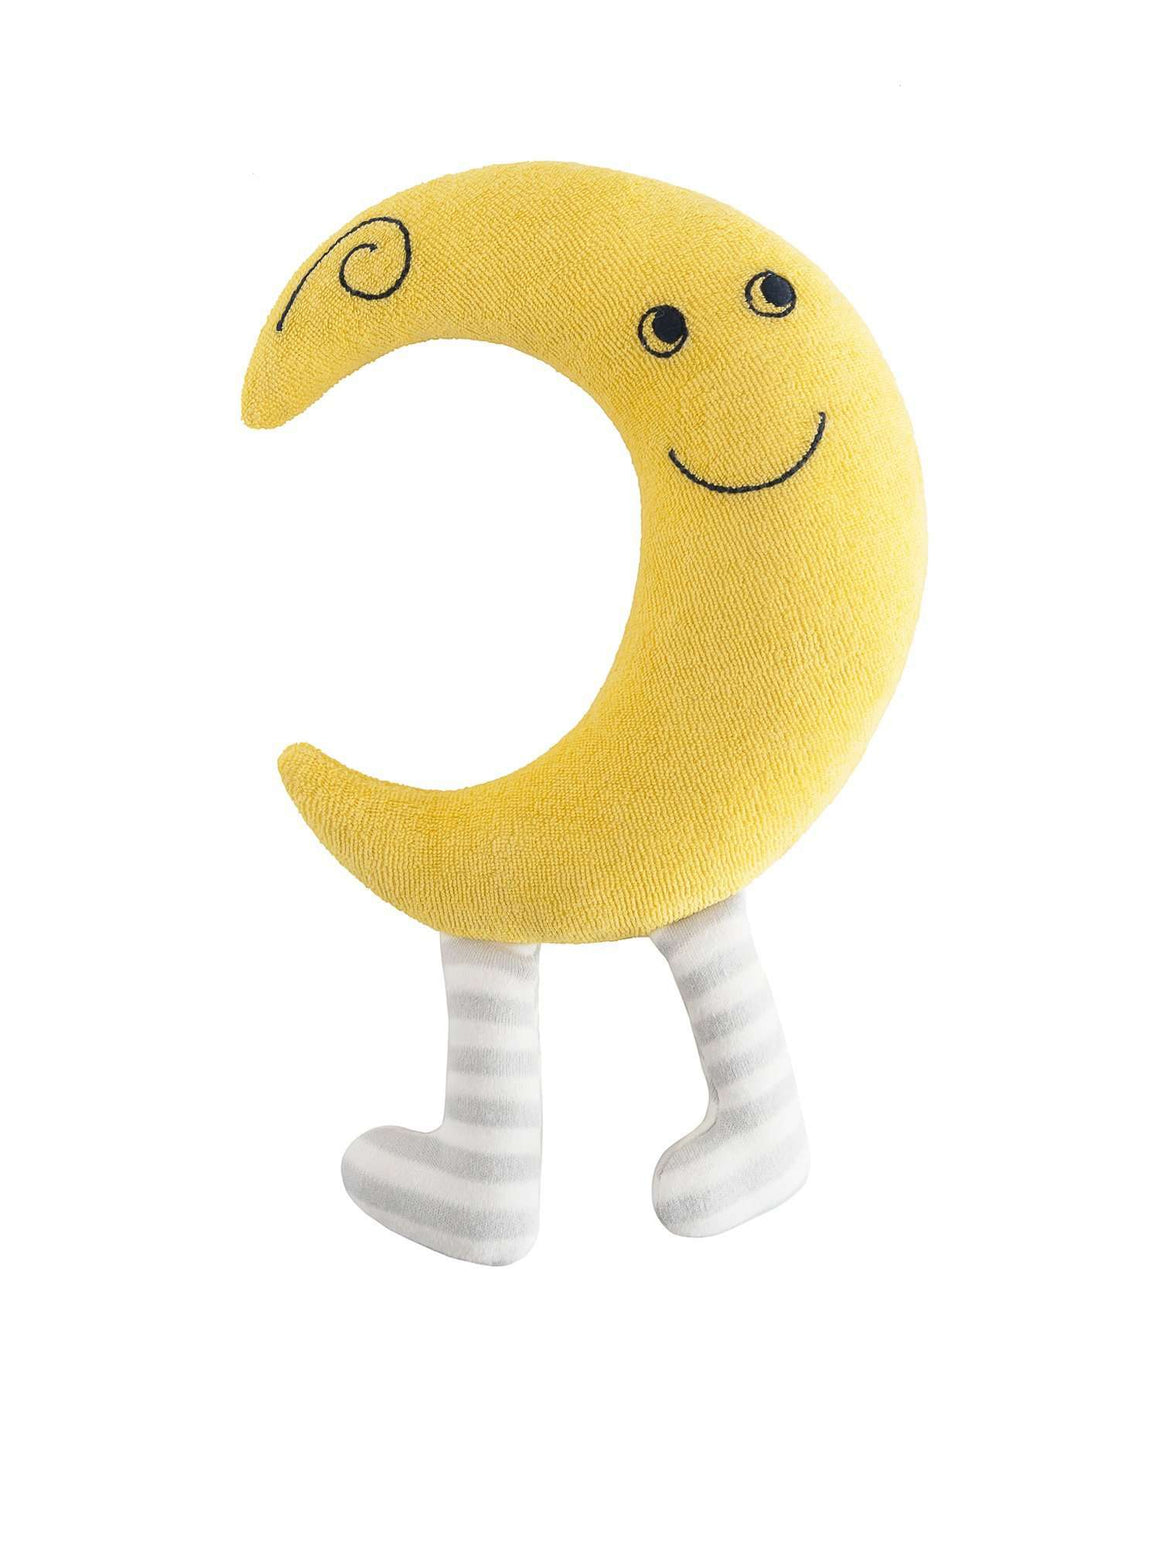 Under The Nile Crissy the Crescent Moon Plush Toy